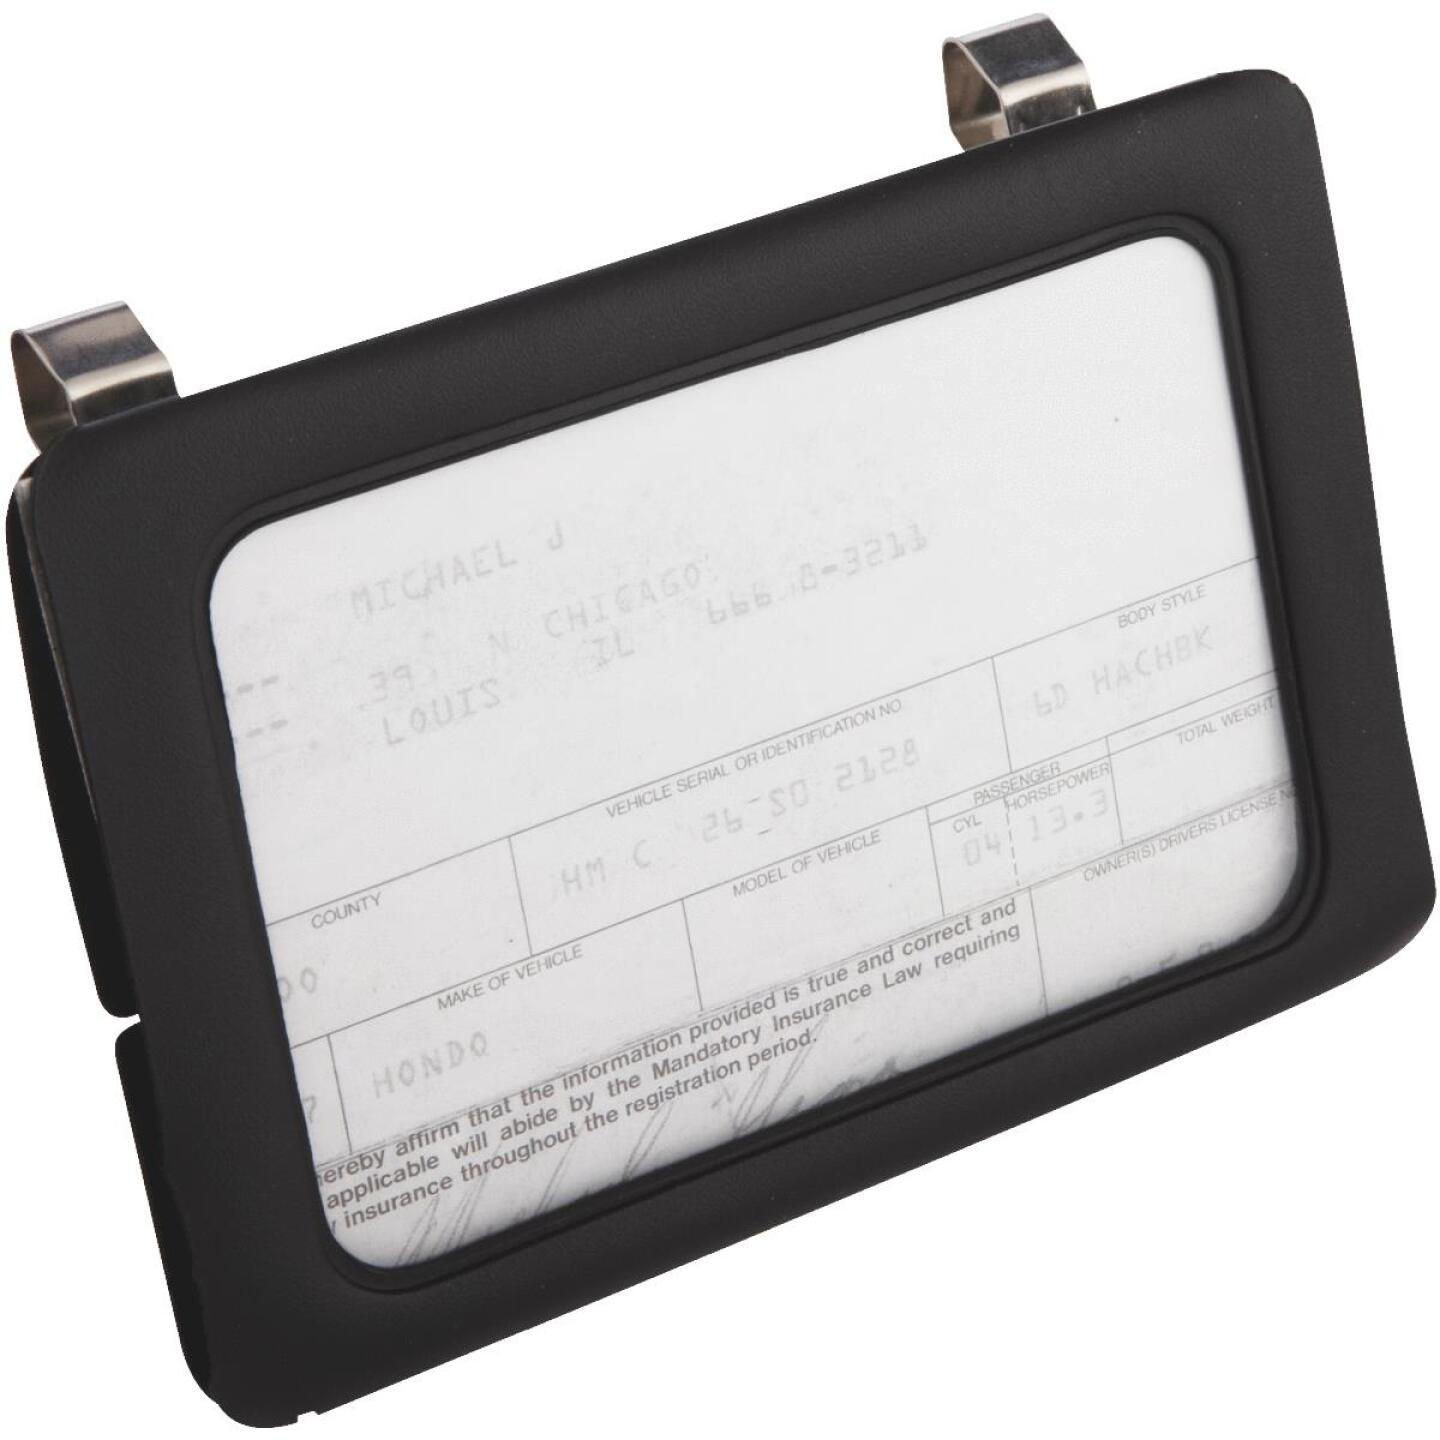 Custom Accessories Clip-On Car Certificate Holder Image 1